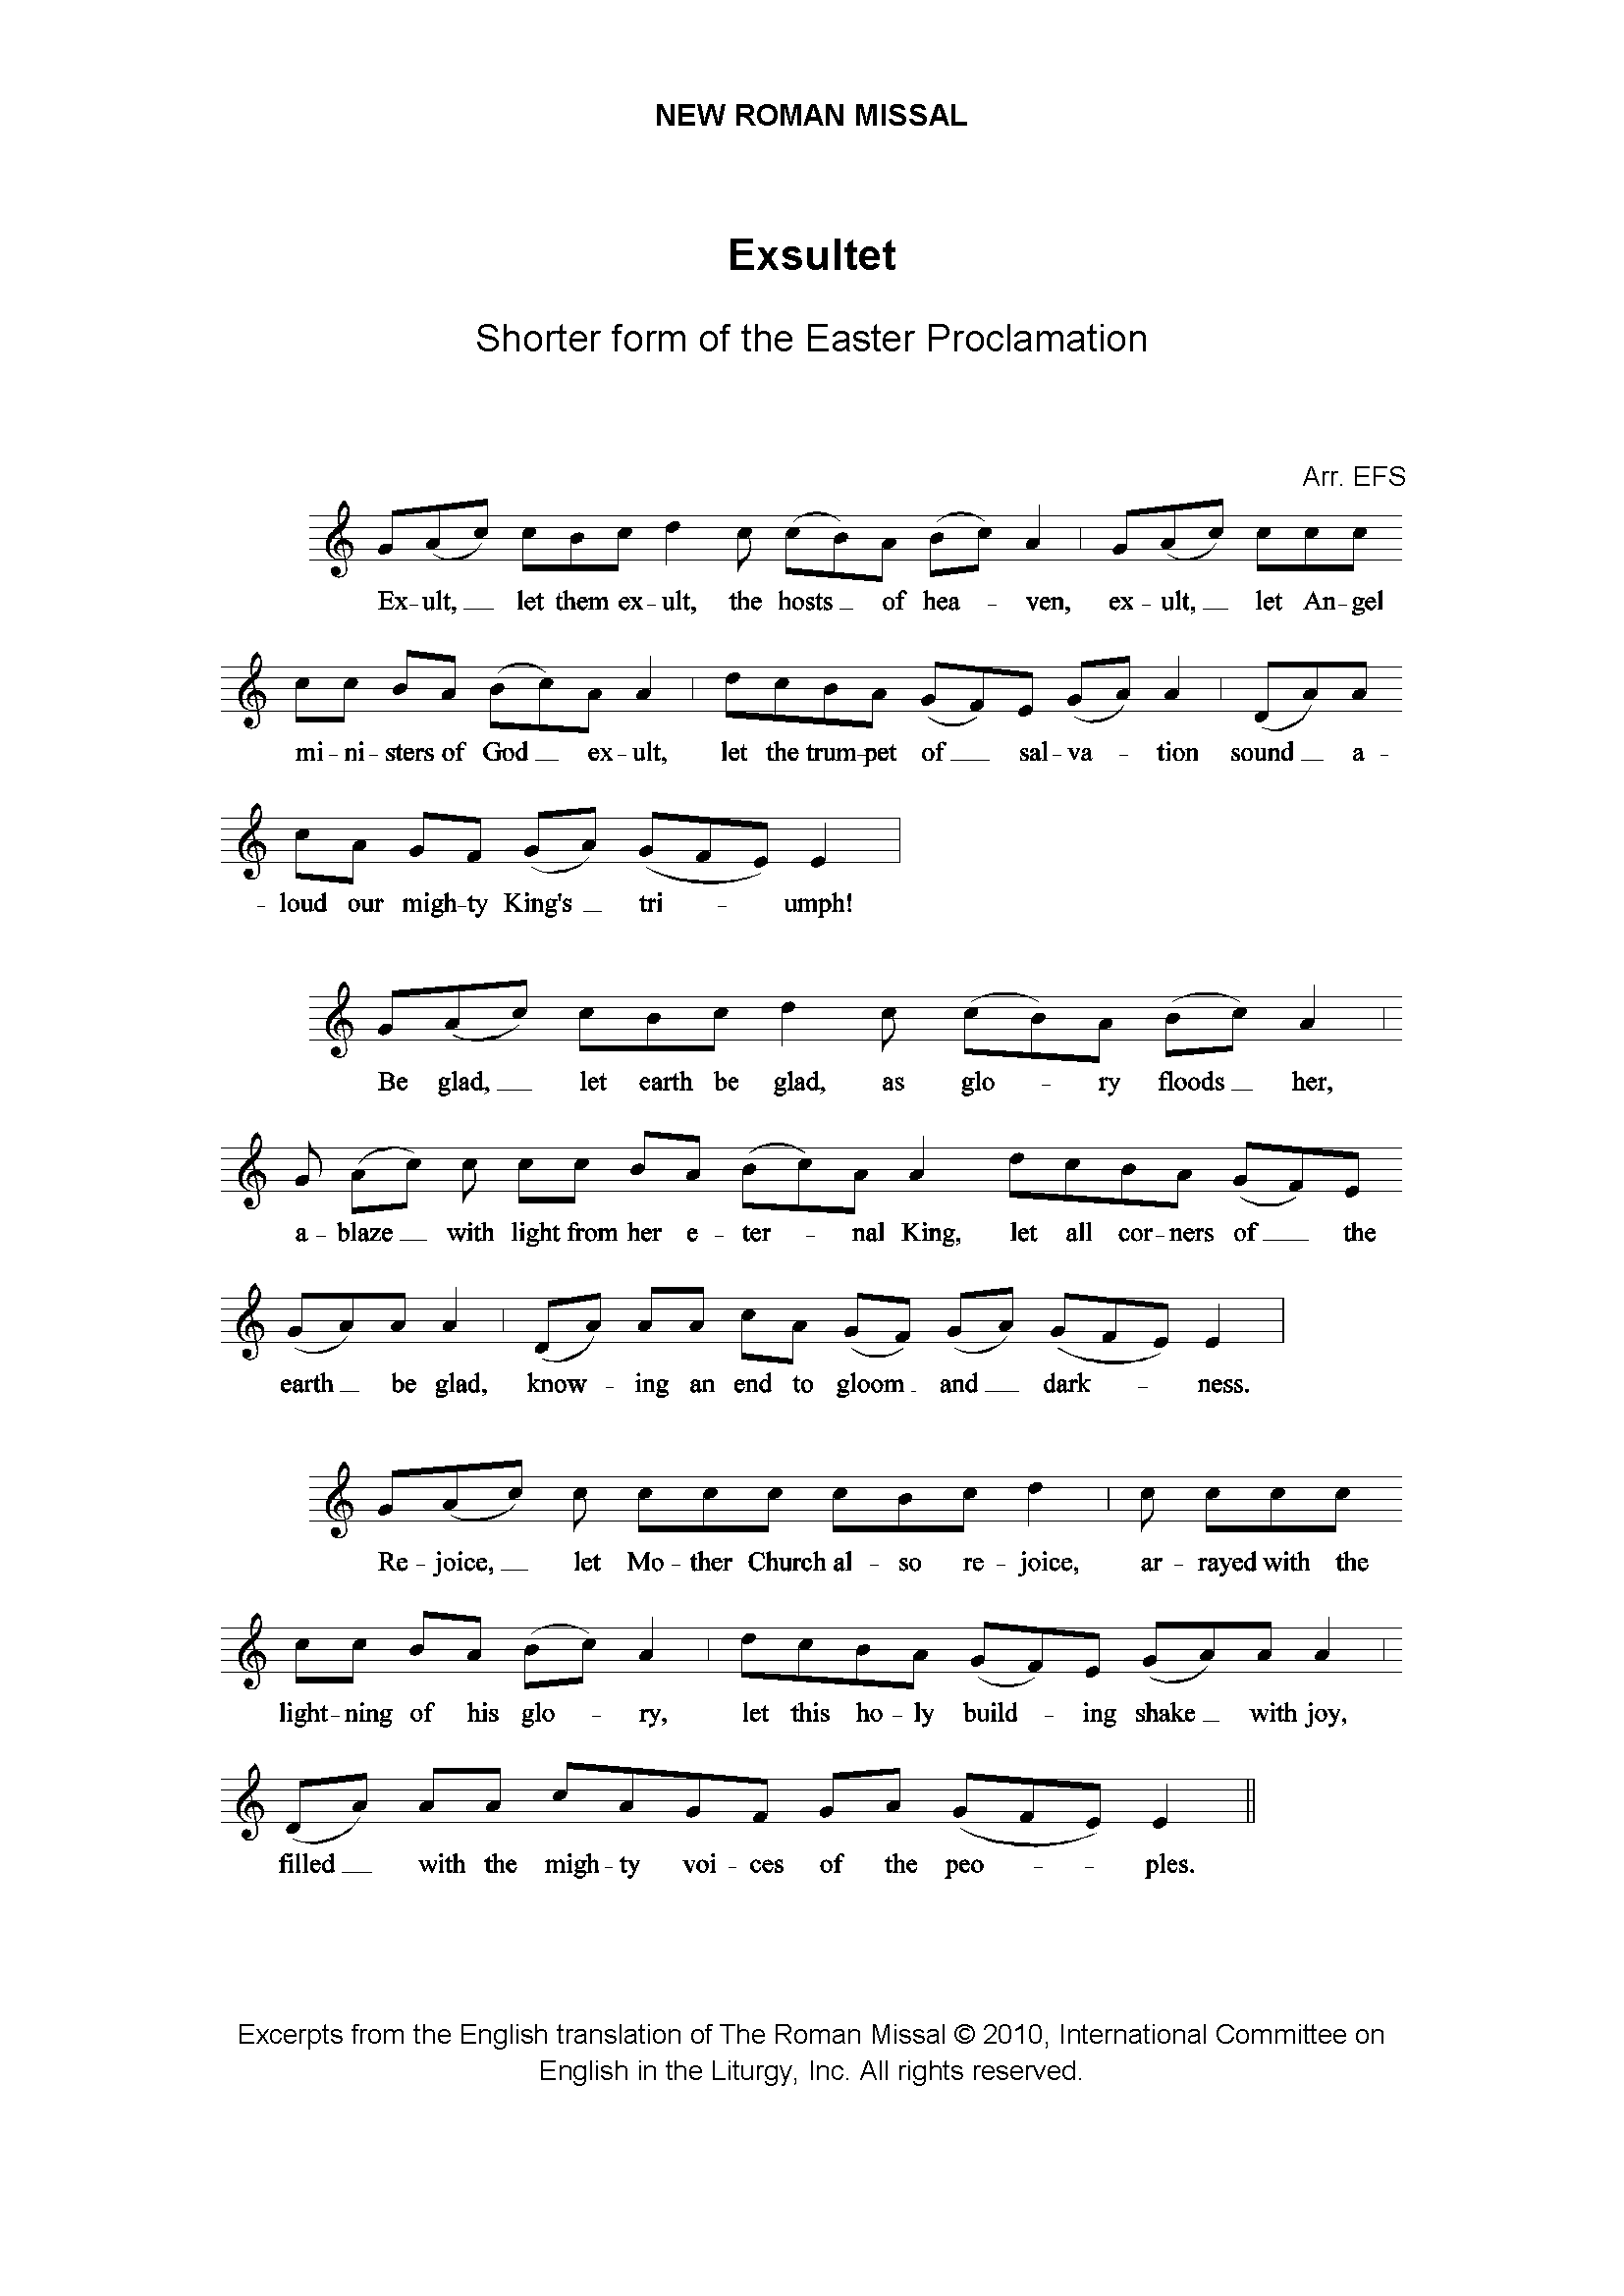 Exsultet page 1